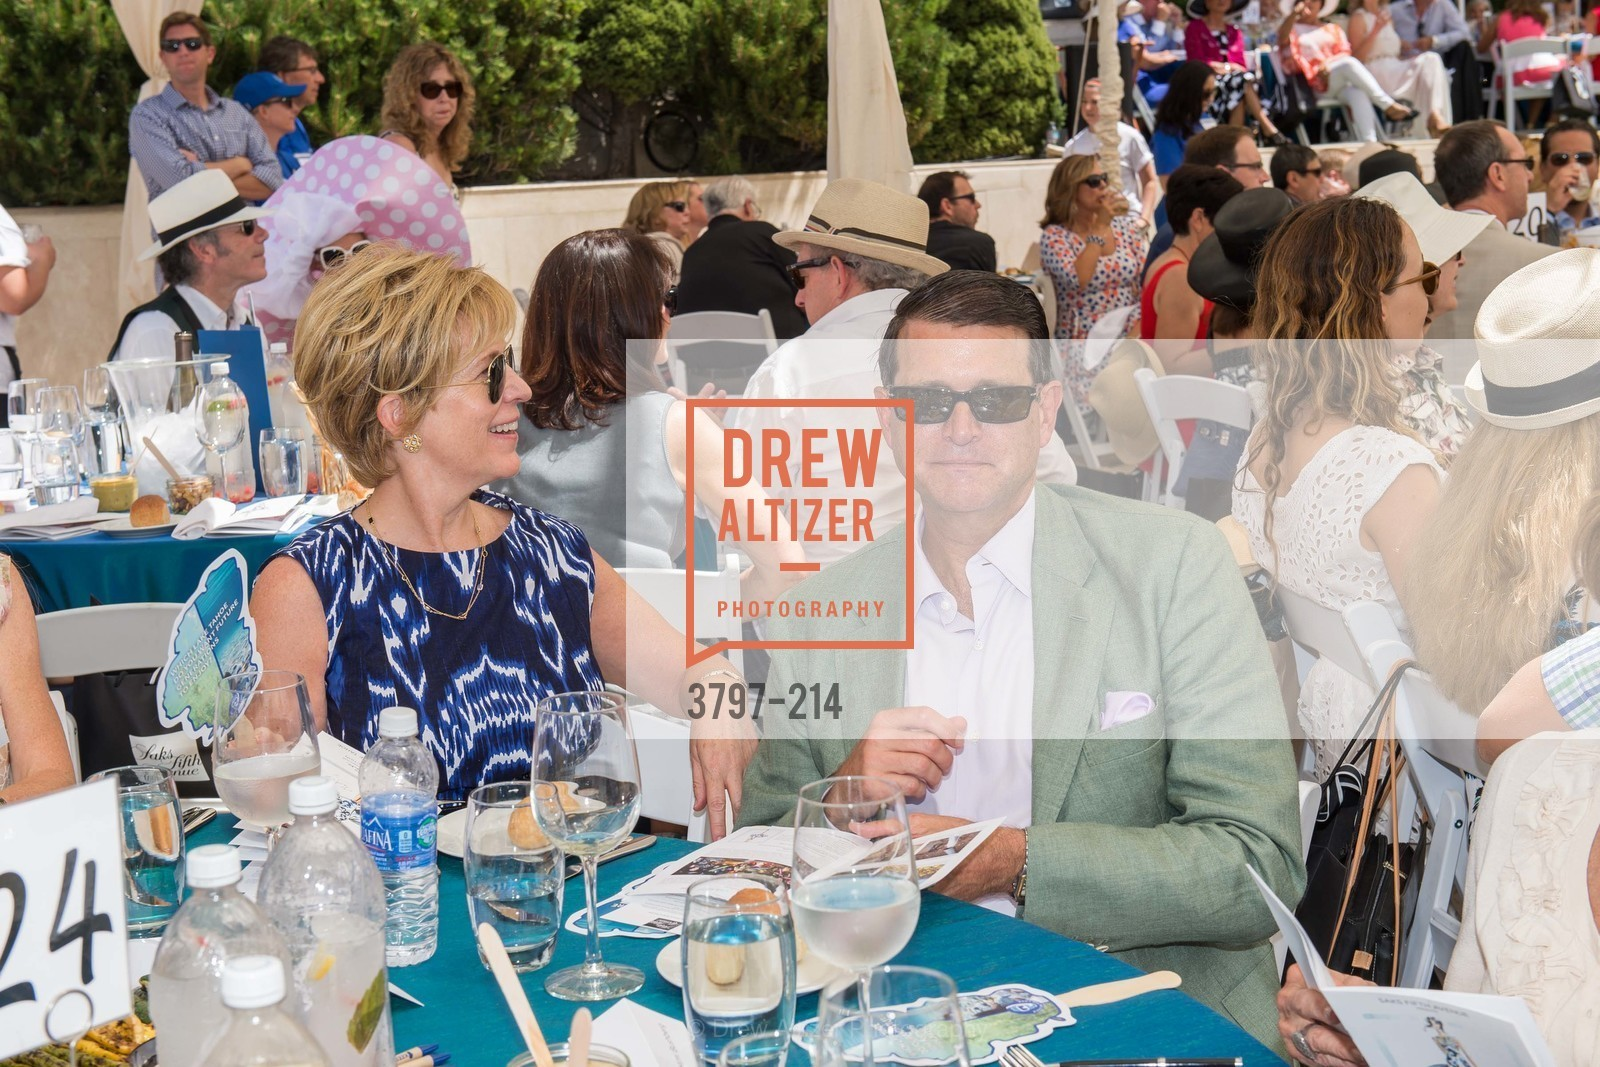 Lynn Poole, Edward Poole, Saks Fifth Avenue and The League to Save Lake Tahoe Present Fashion on the Lake, Private Residence, August 1st, 2015,Drew Altizer, Drew Altizer Photography, full-service agency, private events, San Francisco photographer, photographer california